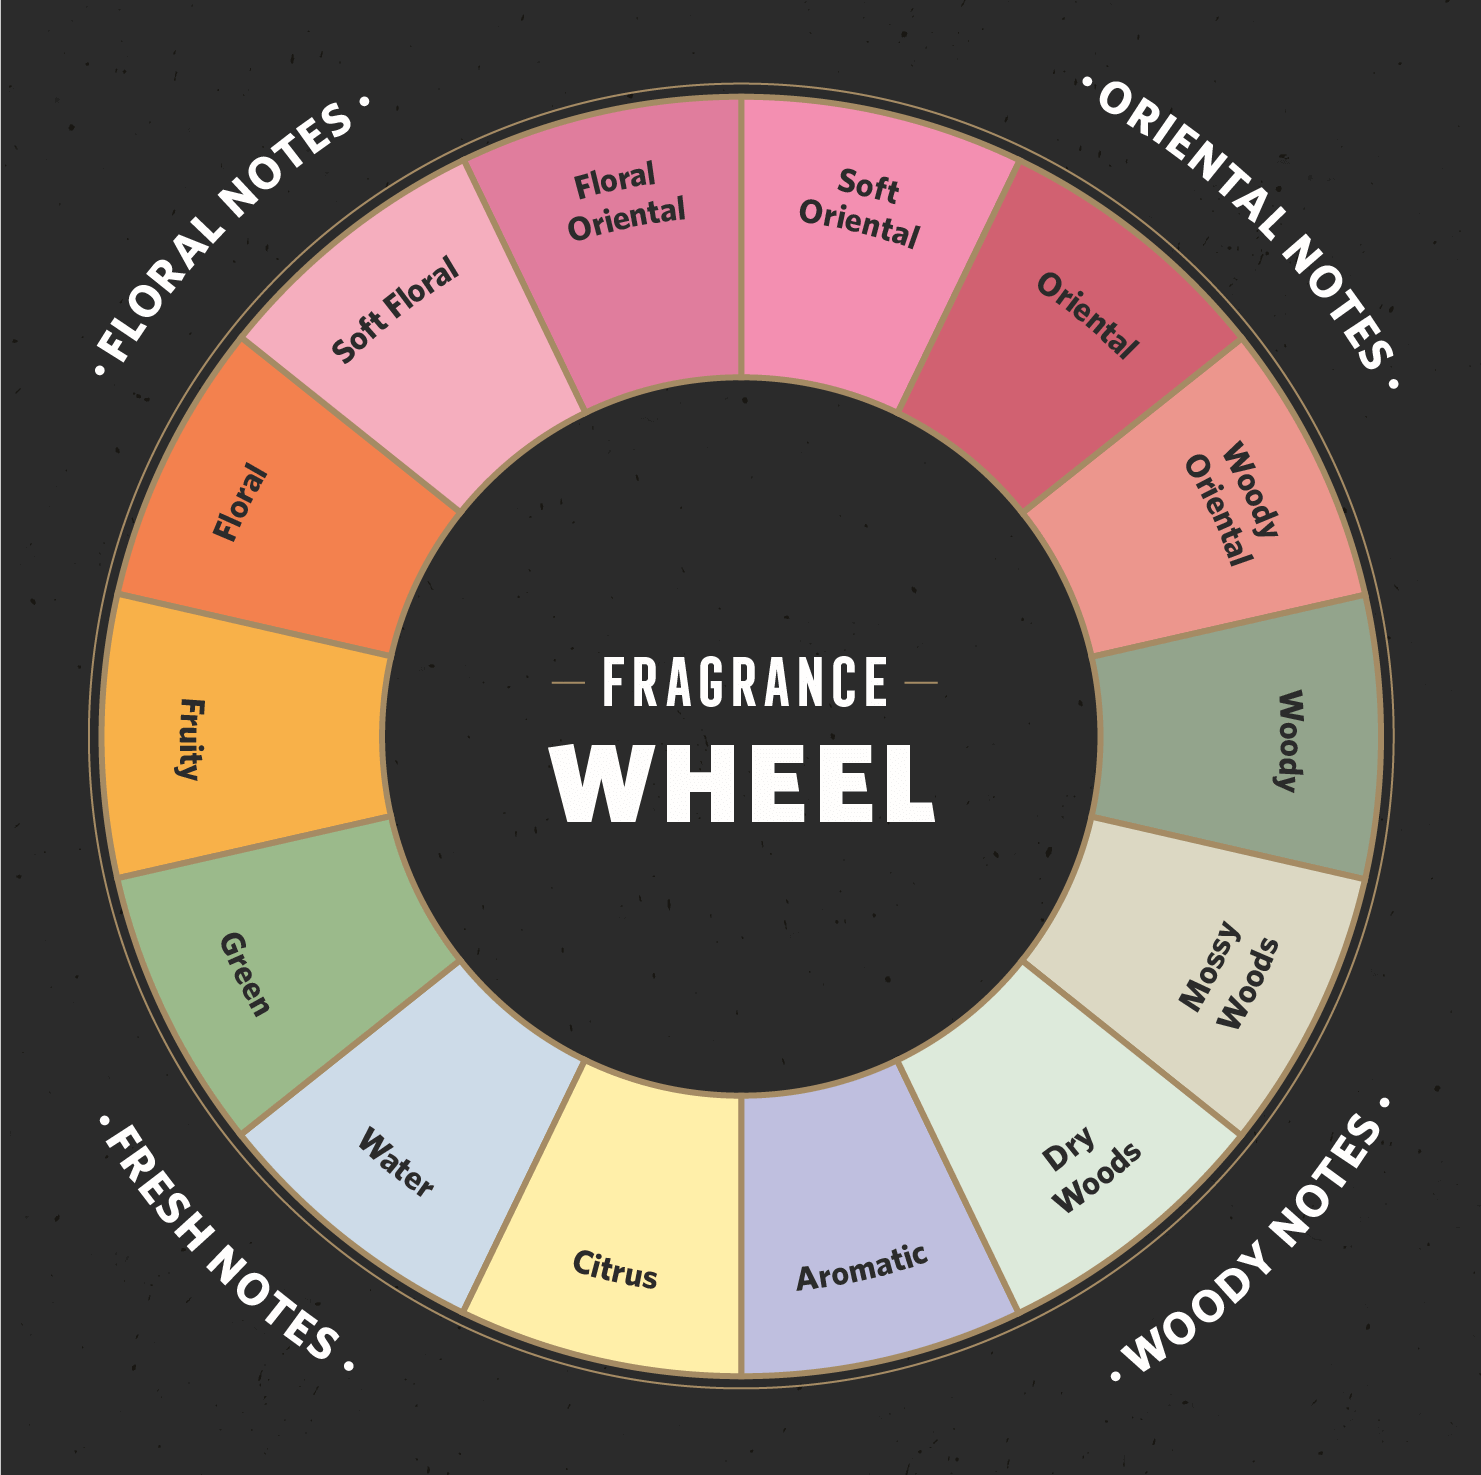 fragrance wheel donut chart